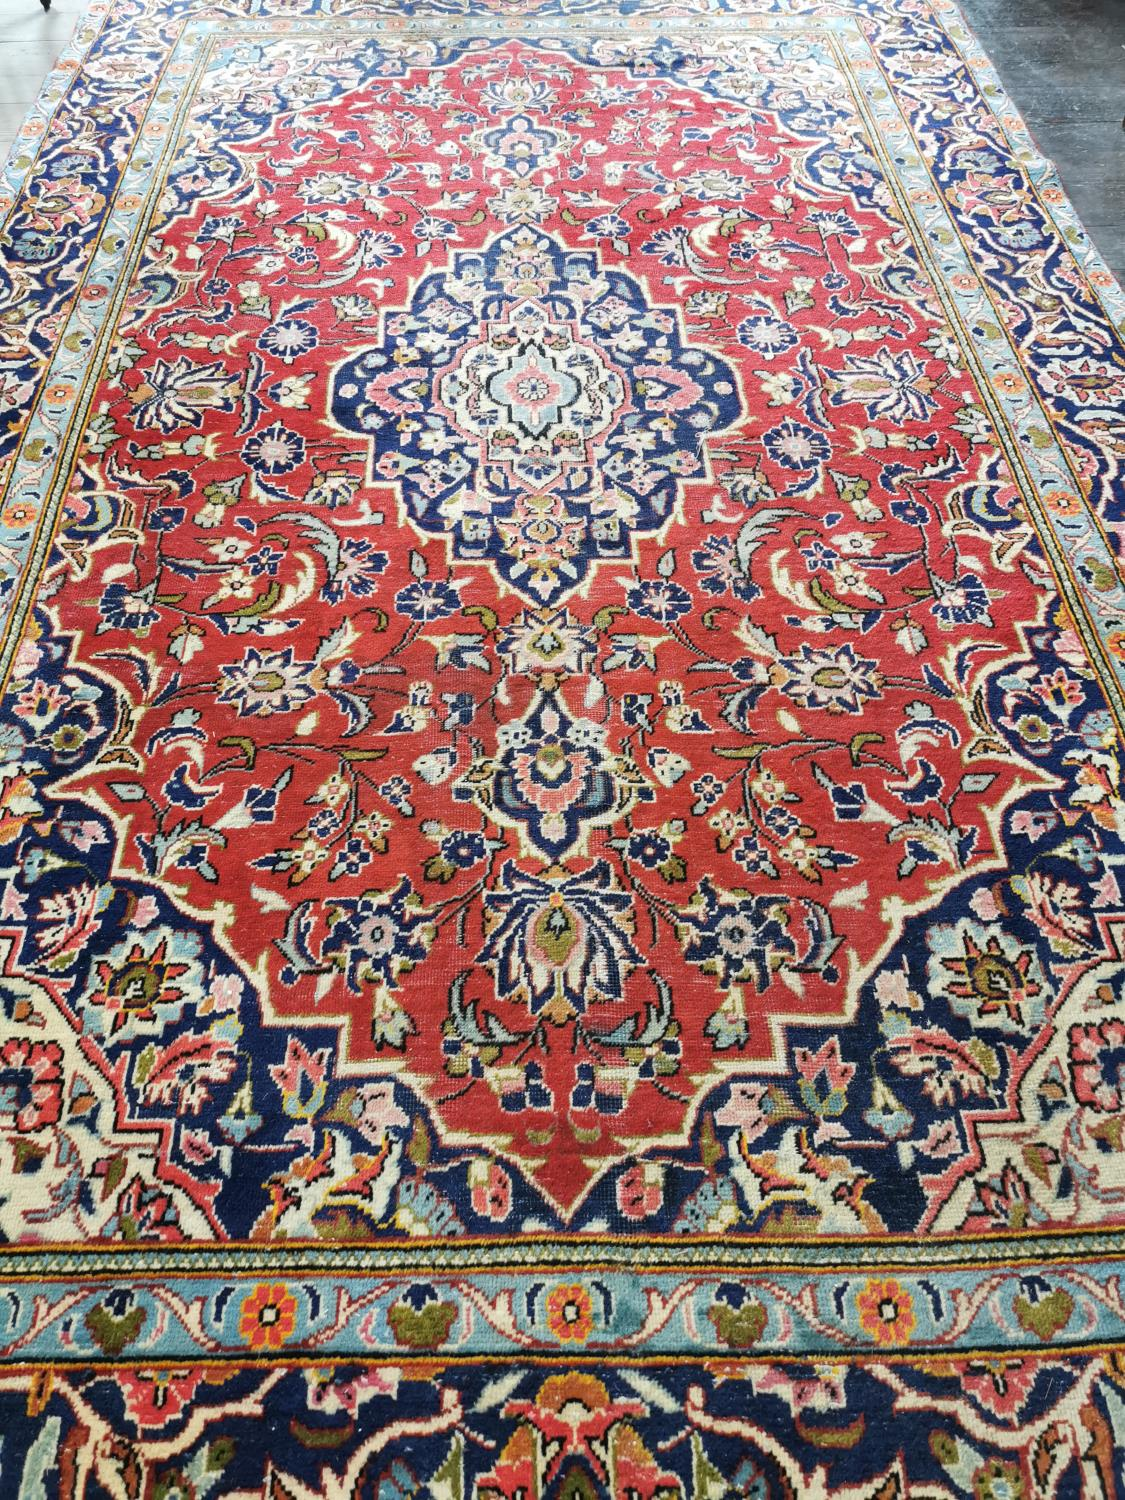 Iranian hand knotted wool carpet - Image 2 of 2